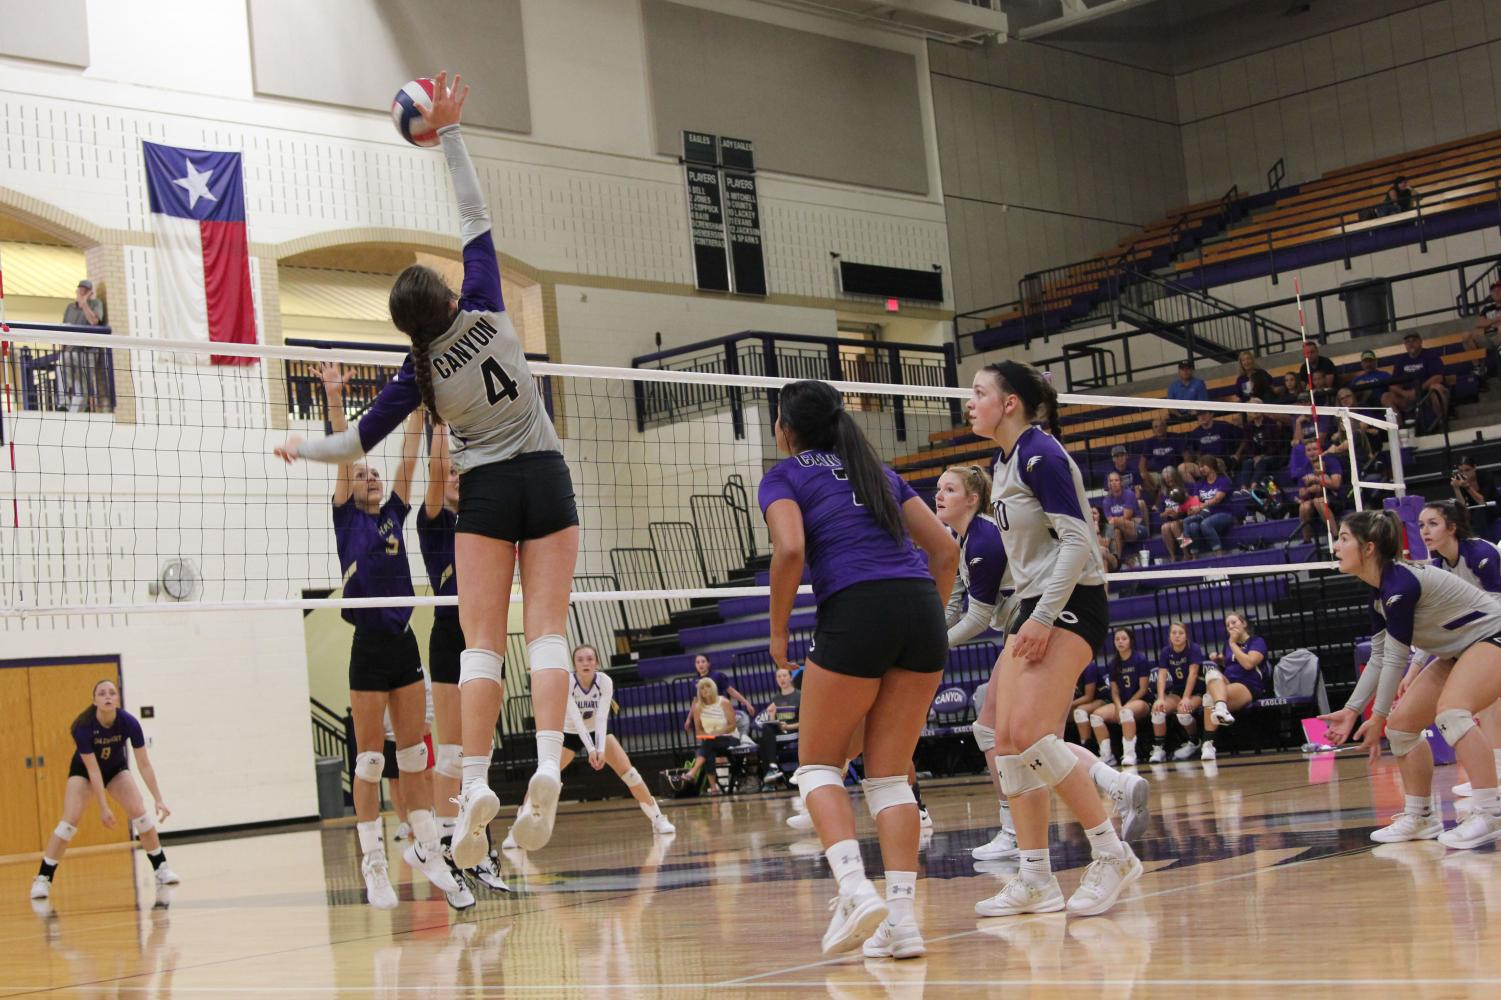 Sophomore Raylee Bain hits the ball back over the net as she plays with teammates Hallie Lacky, Bryli Contreras and McKenna Coppock in preseason victory against Dalhart.